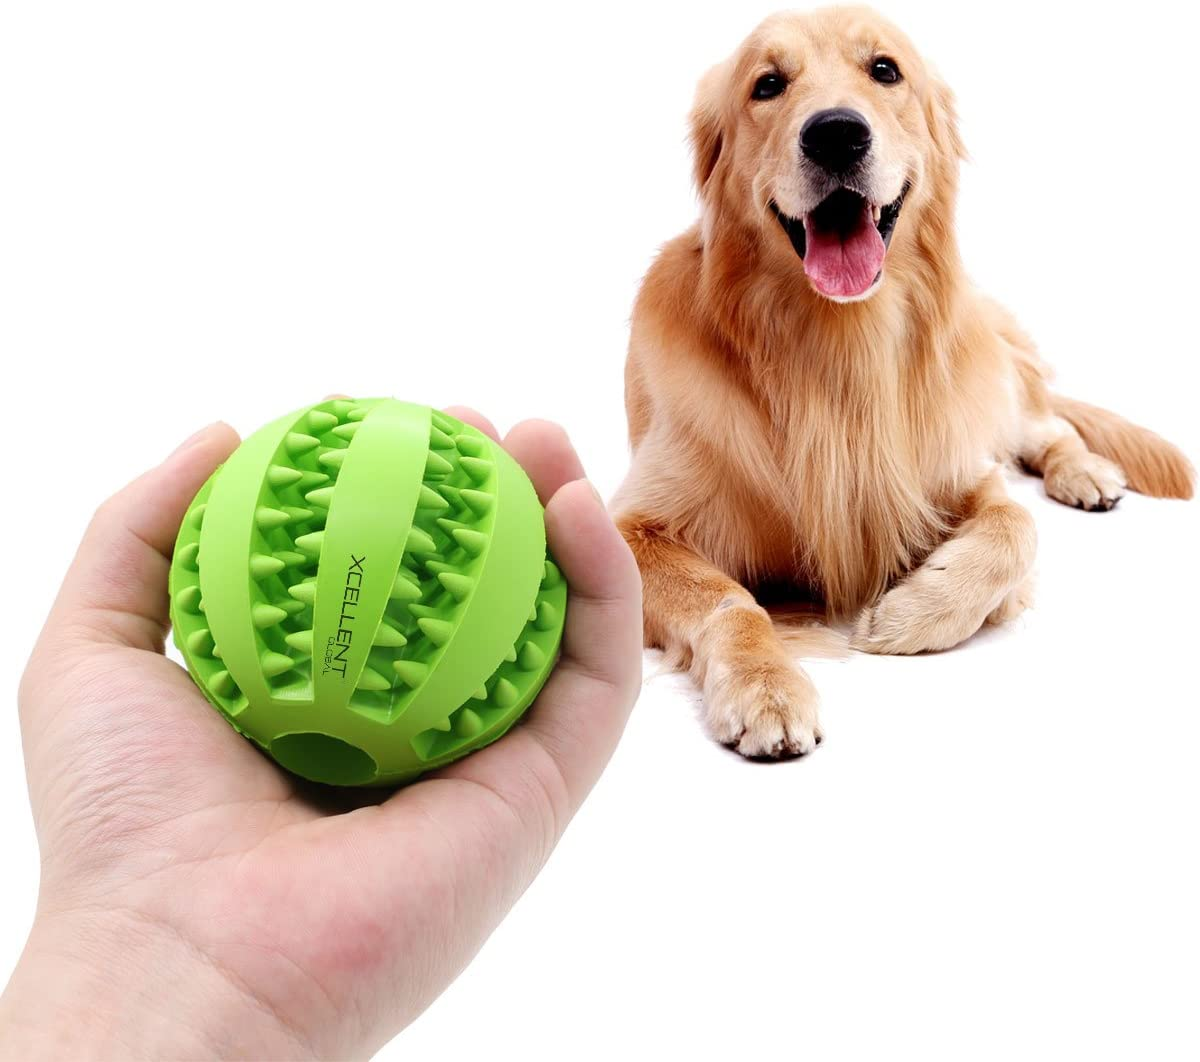 Dog Chew Ball Toy Tooth Cleaning Dental Treat Bite Resistant Durable Bouncy Rubber Dog Toy Ball for Chewing/Training/Playing PT034